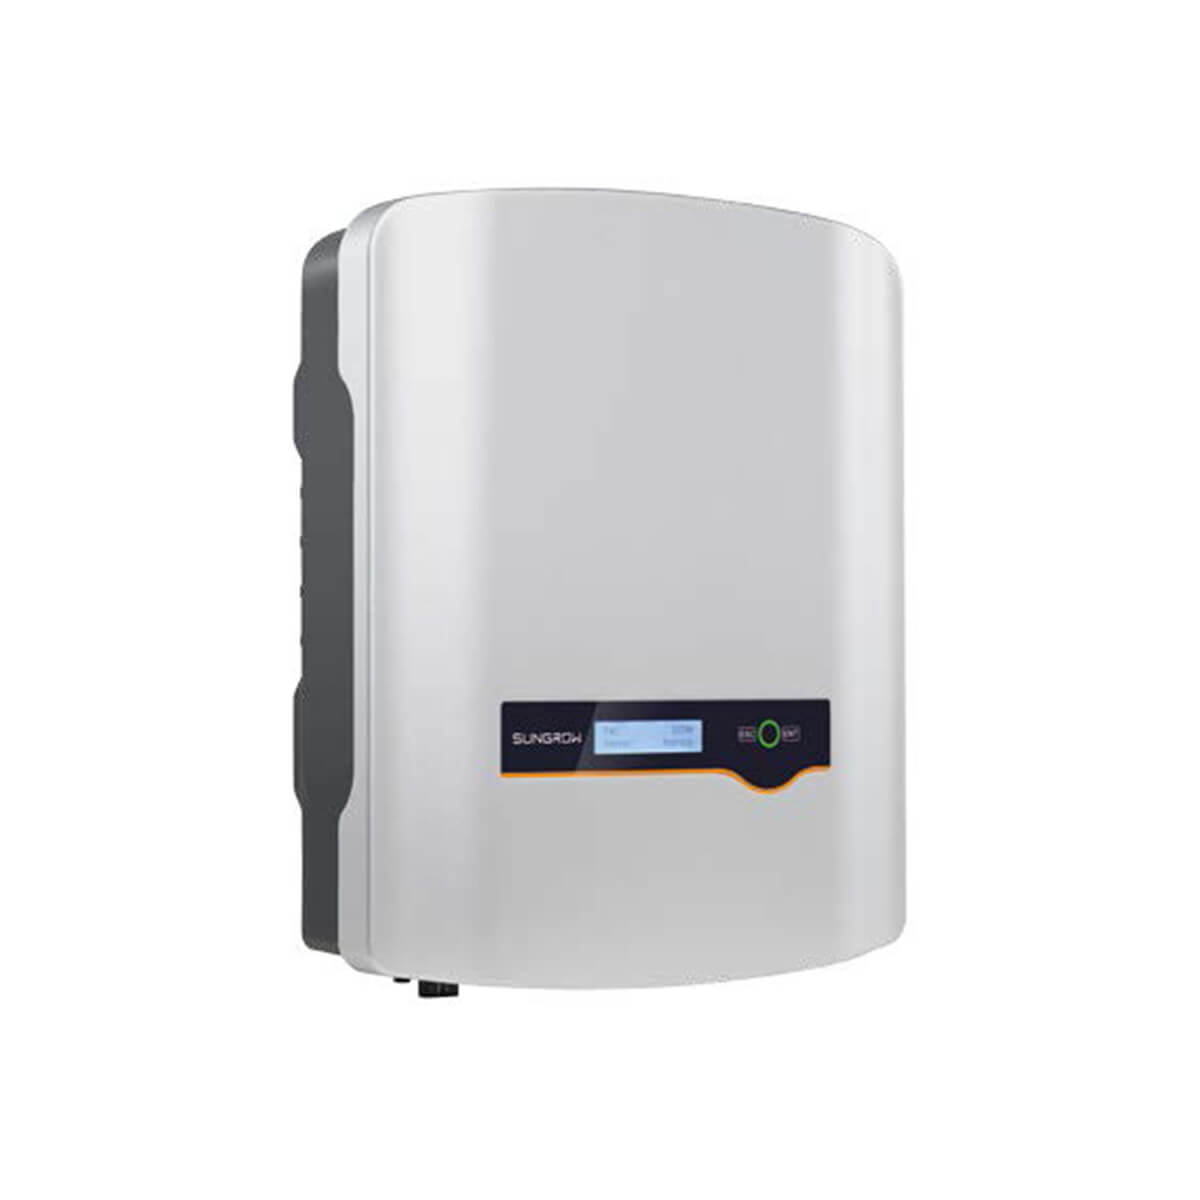 sungrow 2.5kW inverter, sungrow sg2k5-s 2.5kW inverter, sungrow sg2k5-s inverter, sungrow sg2k5-s, sungrow 2.5 kW